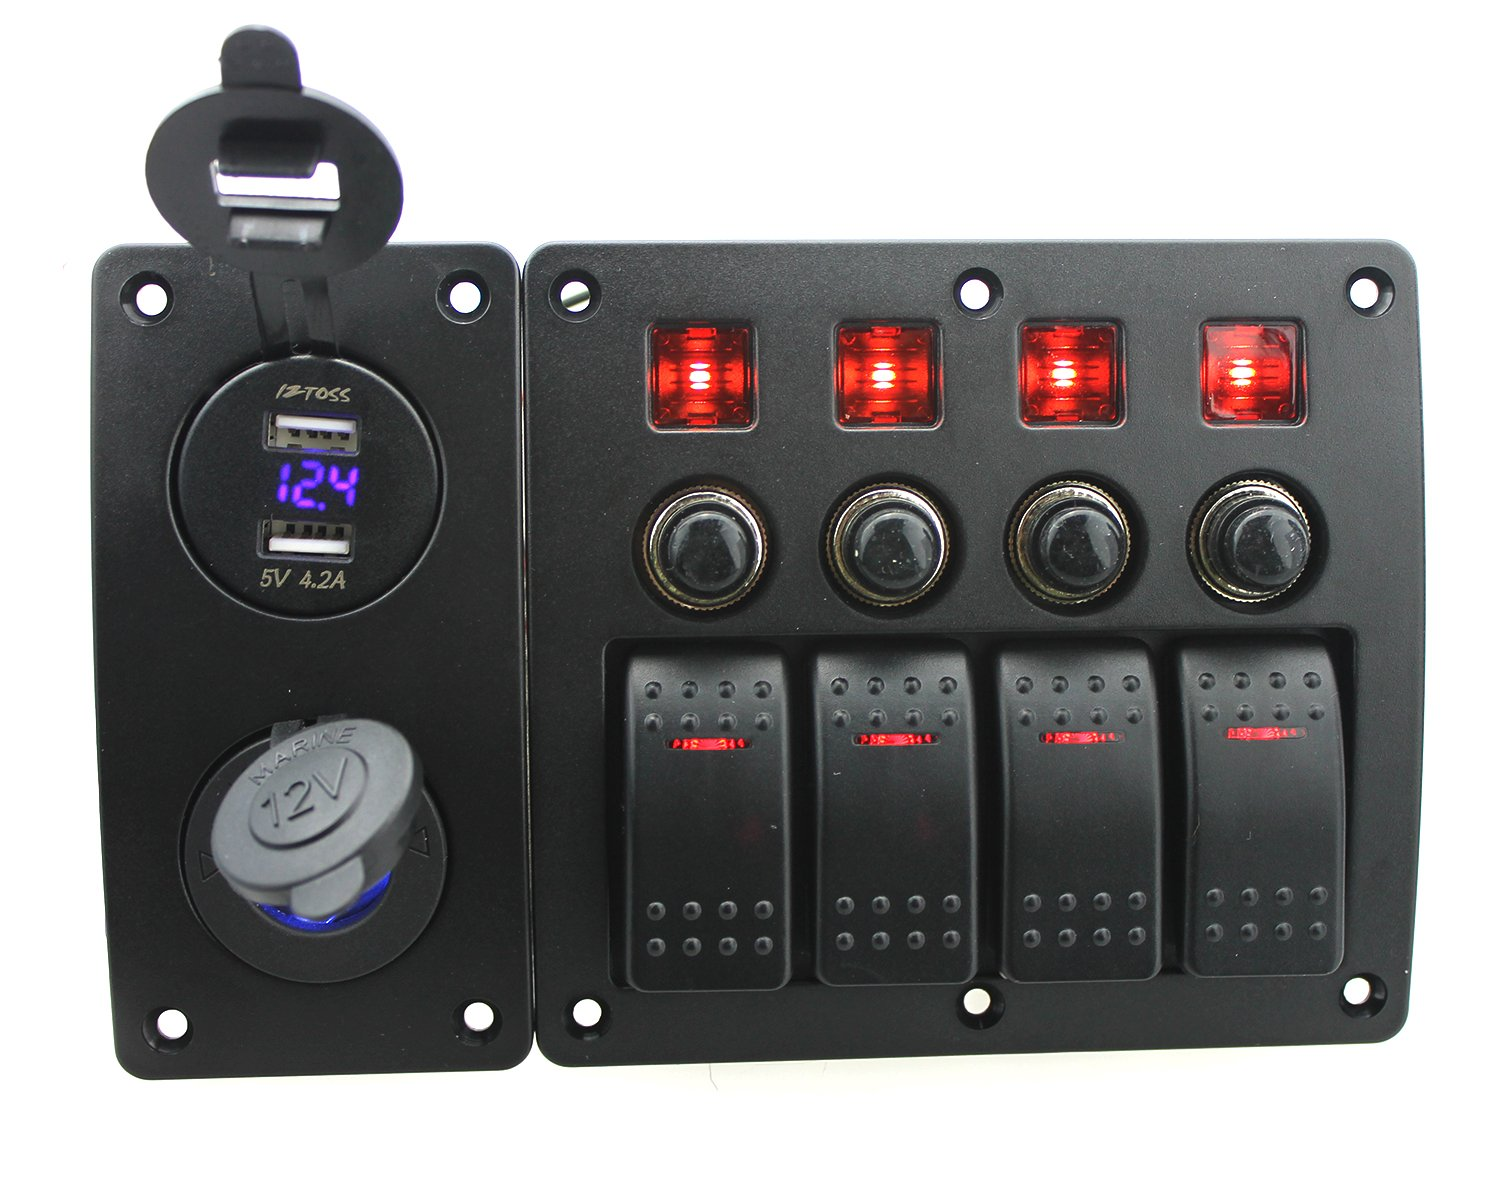 Iztor 4 Gang Waterproof Curved surface Switch Panel with red LED Indicators for Circuit Breaker with blue led power charger and DC12V/24V USB voltmeter panel by iztor